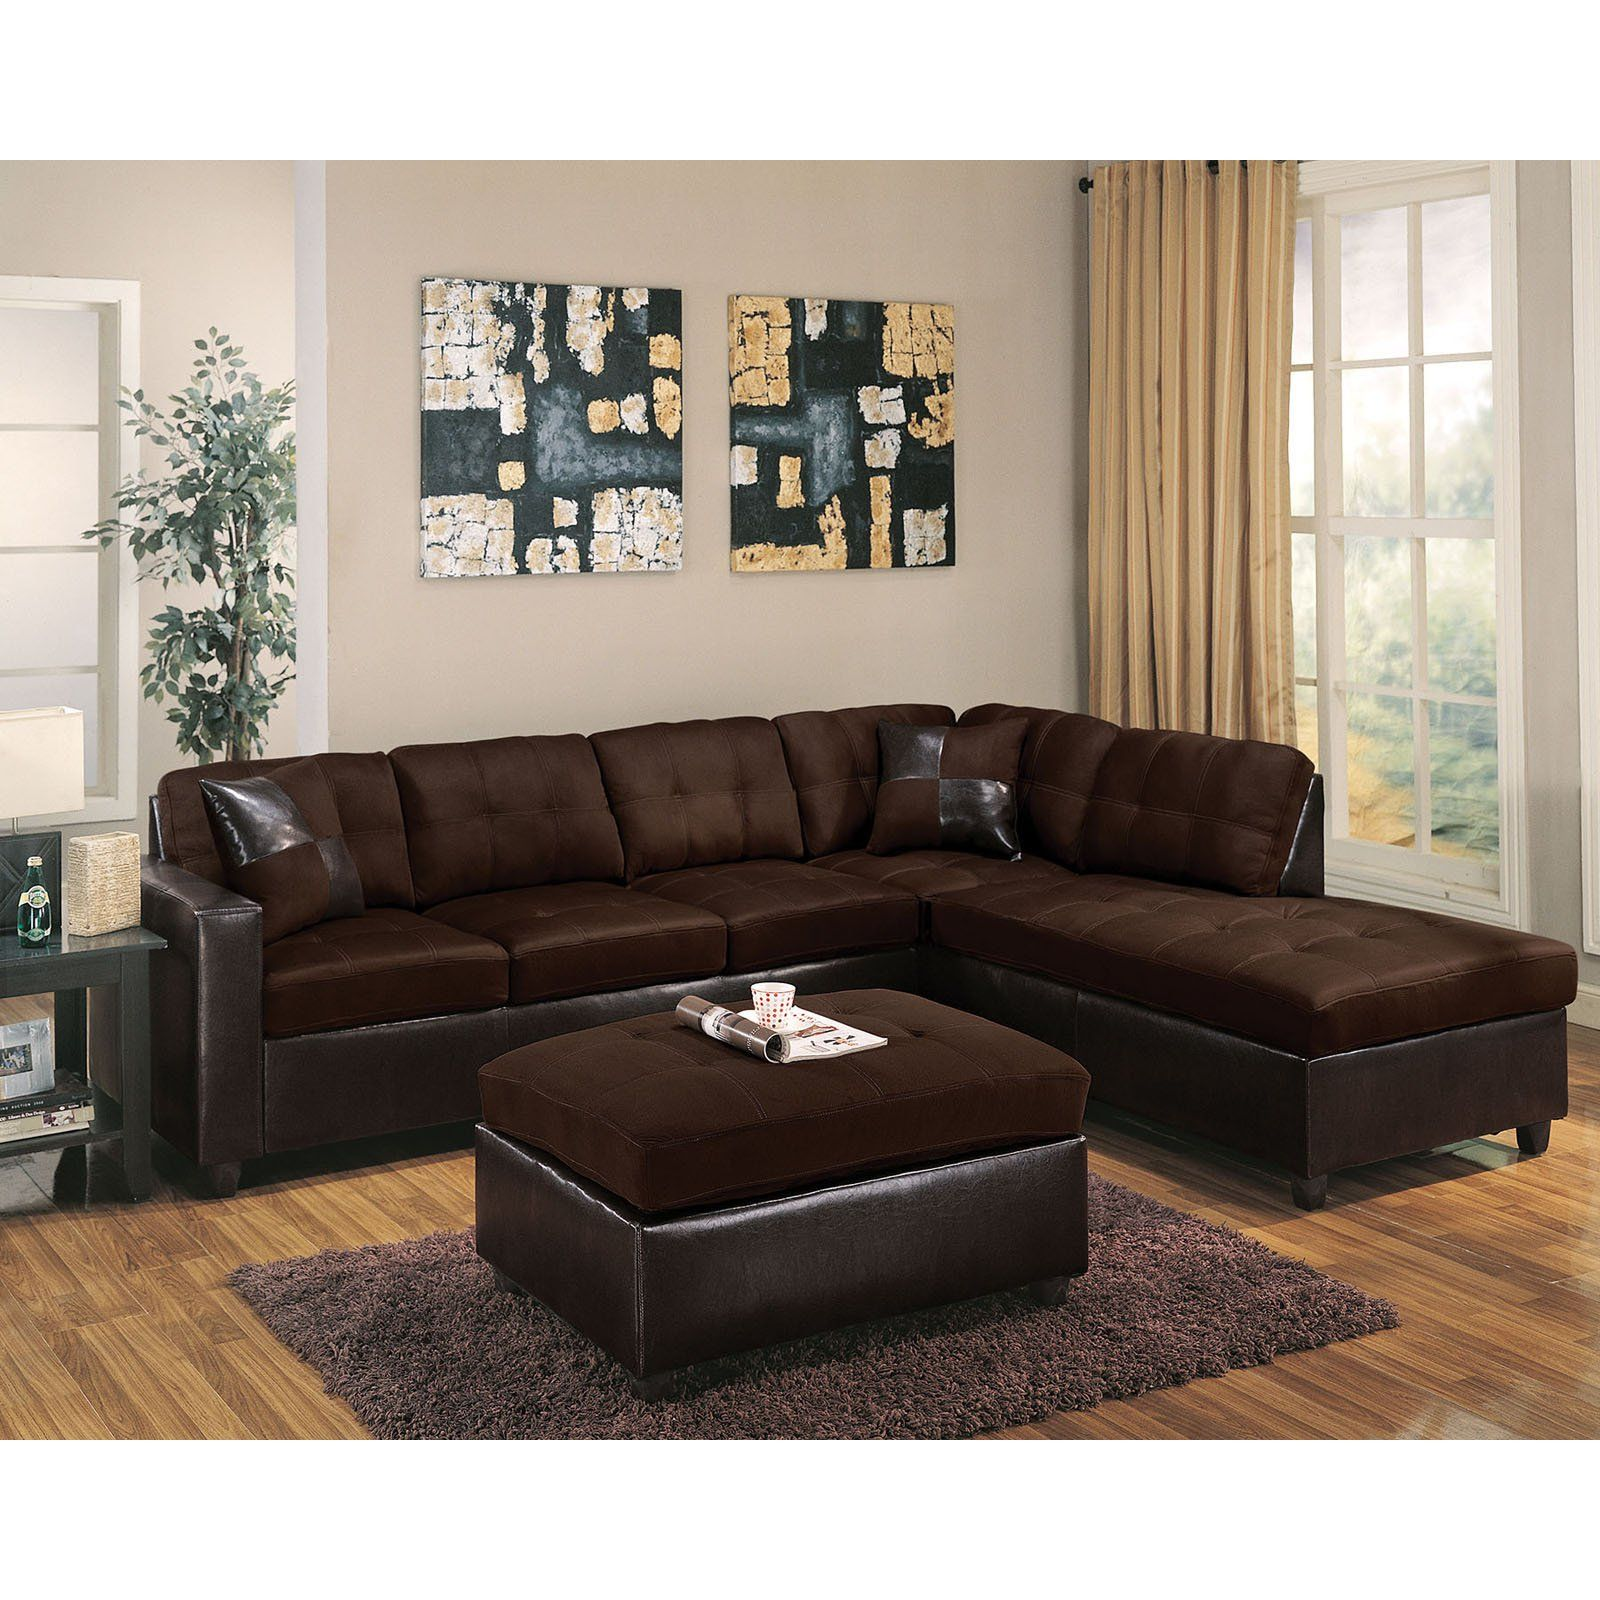 Acme Furniture Milano Ottoman Brown Products In 2019